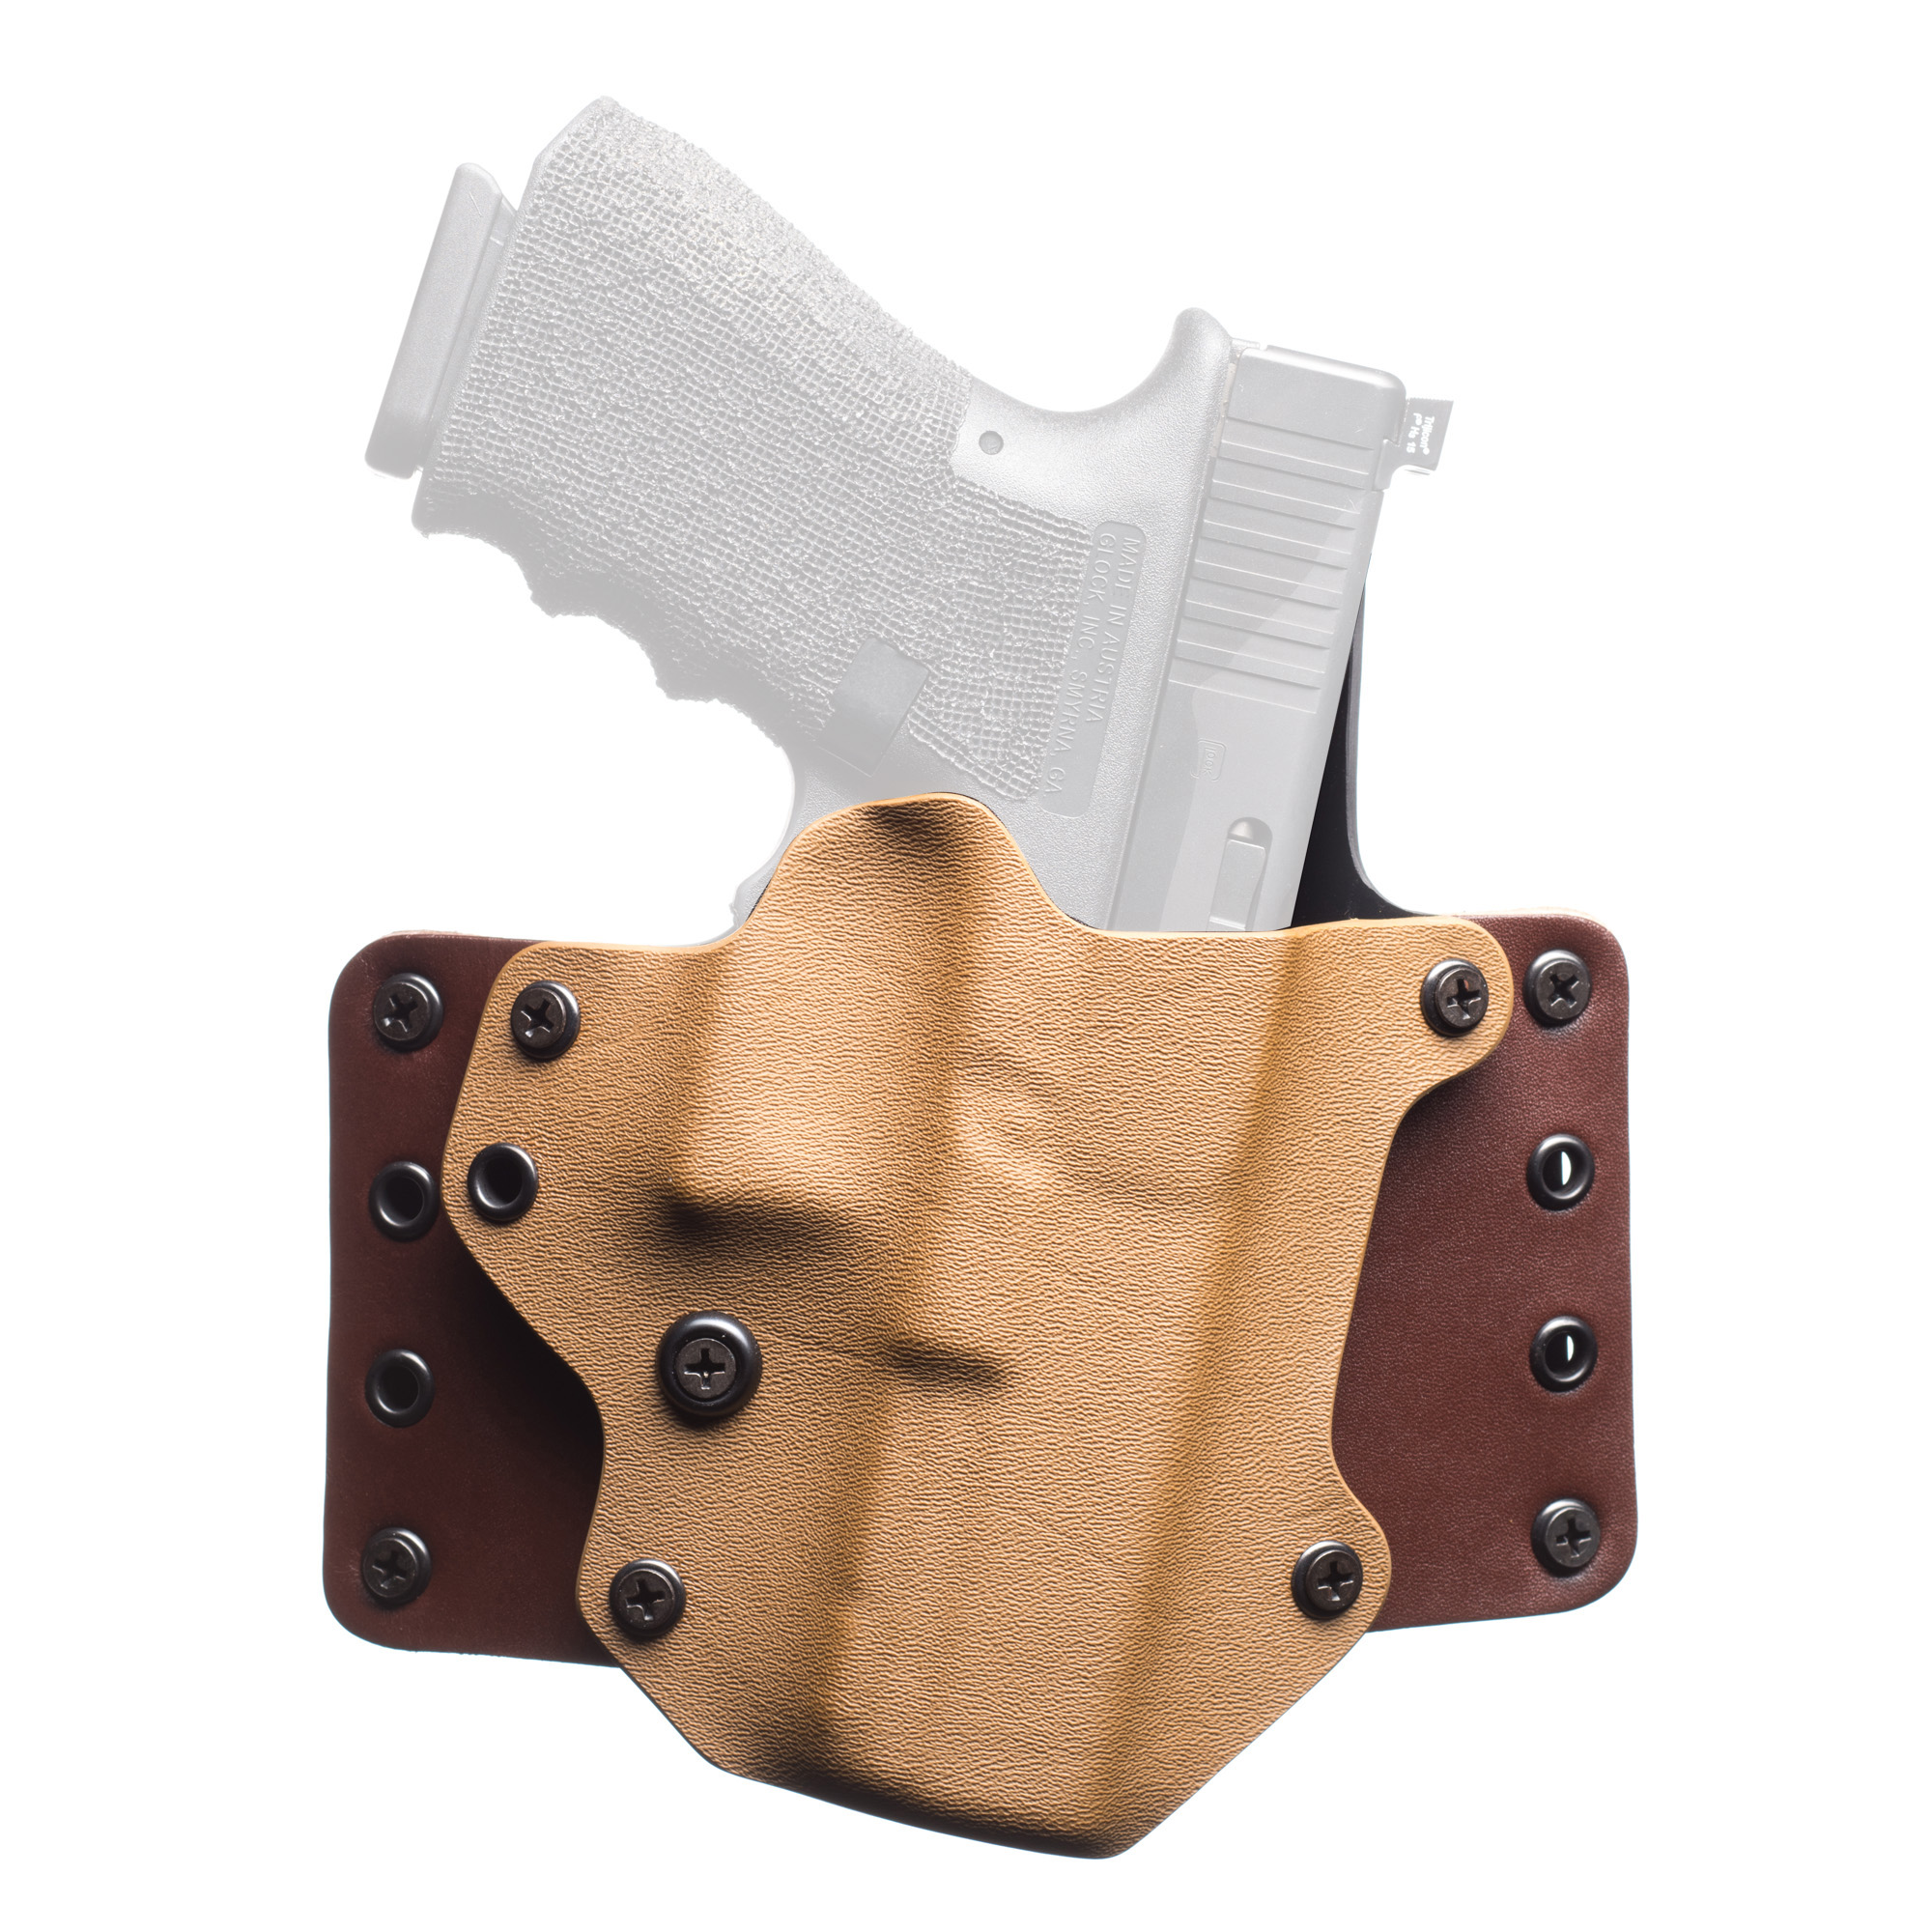 "The Leather WING(TM) holster by BlackPoint Tactical is a naturally evolved version of the original KYDEX(R) holster. The Leather WING(TM) is designed to retain the most popular features of a KYDEX(R) holster"" while improving the fit of the holster to the body through the addition of leather ""wings"". These wings allow the holster to wrap and fit the contours of the waist. The seamless integration of leather and KYDEX(R) allows for the retention and function of a traditional KYDEX(R) holster"" while providing the comfort of a traditional leather holster. The Leather WING(TM) allows the holster to naturally curve with the body"" giving a much slimmer and more comfortable fit. This configuration allows for ultimate comfort"" reliability"" and concealment."